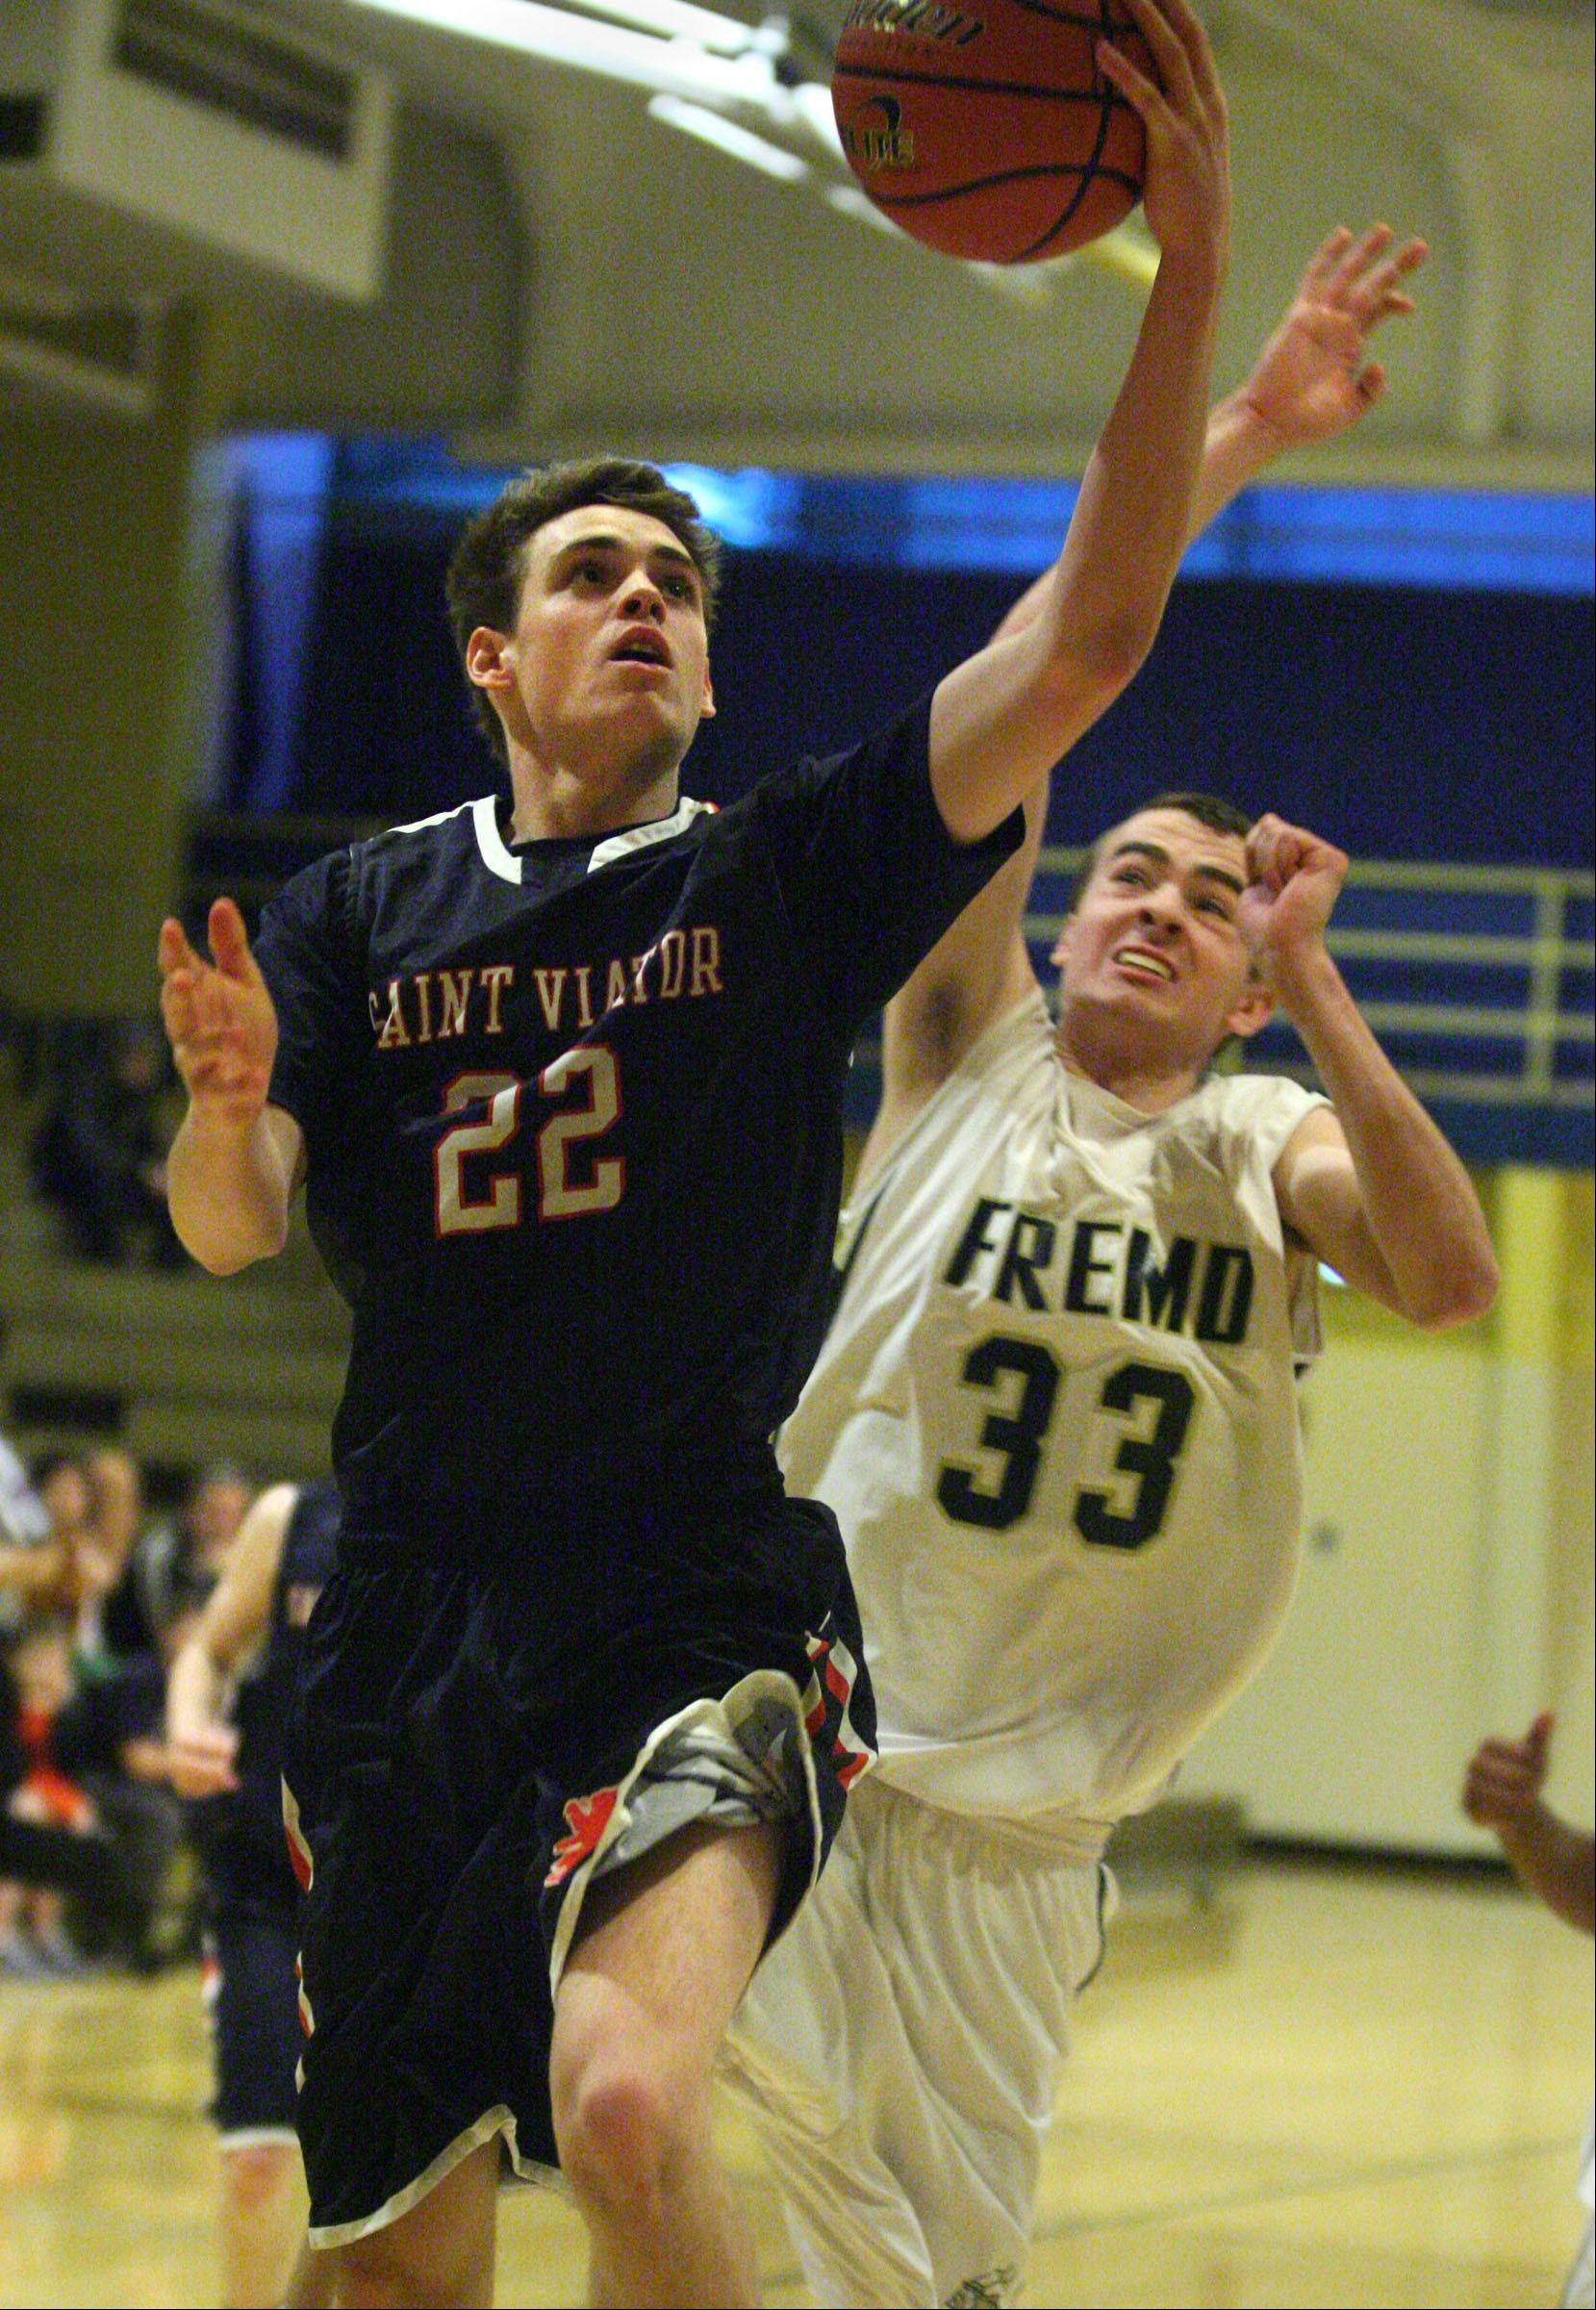 St. Viator's Patrick Martin shoots with Fremd defender Sean Benka trailing in the 35th annual Wheeling Wildcat Hardwood Classic on Thursday..